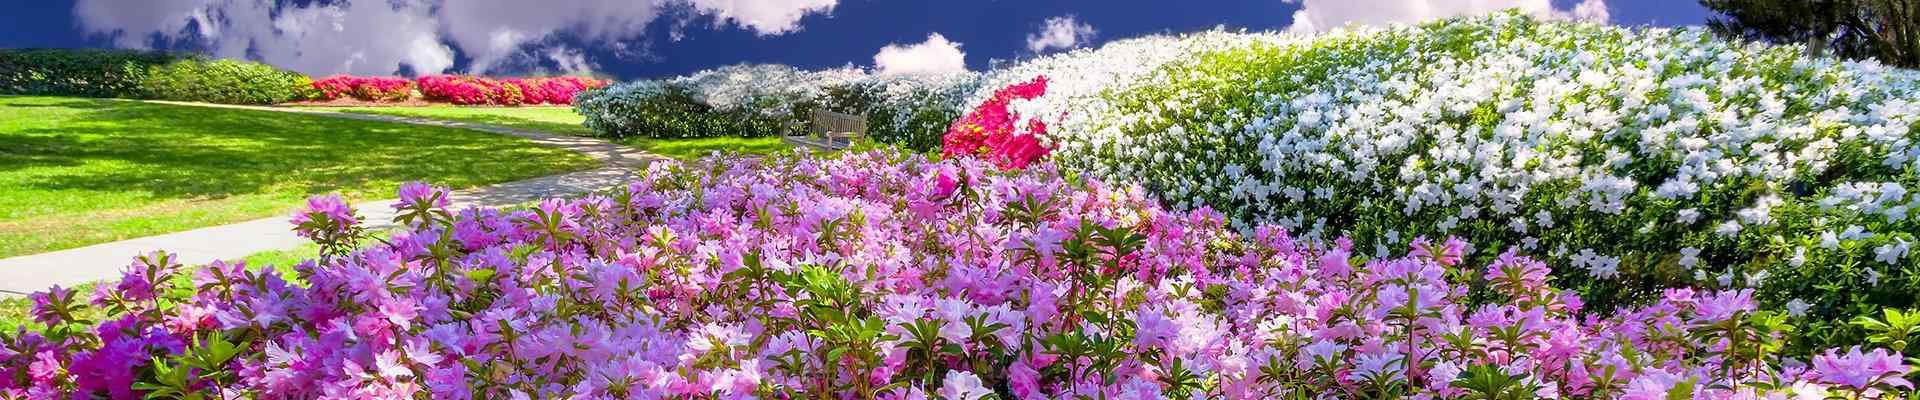 a garden of flowers in a park in highland park texas